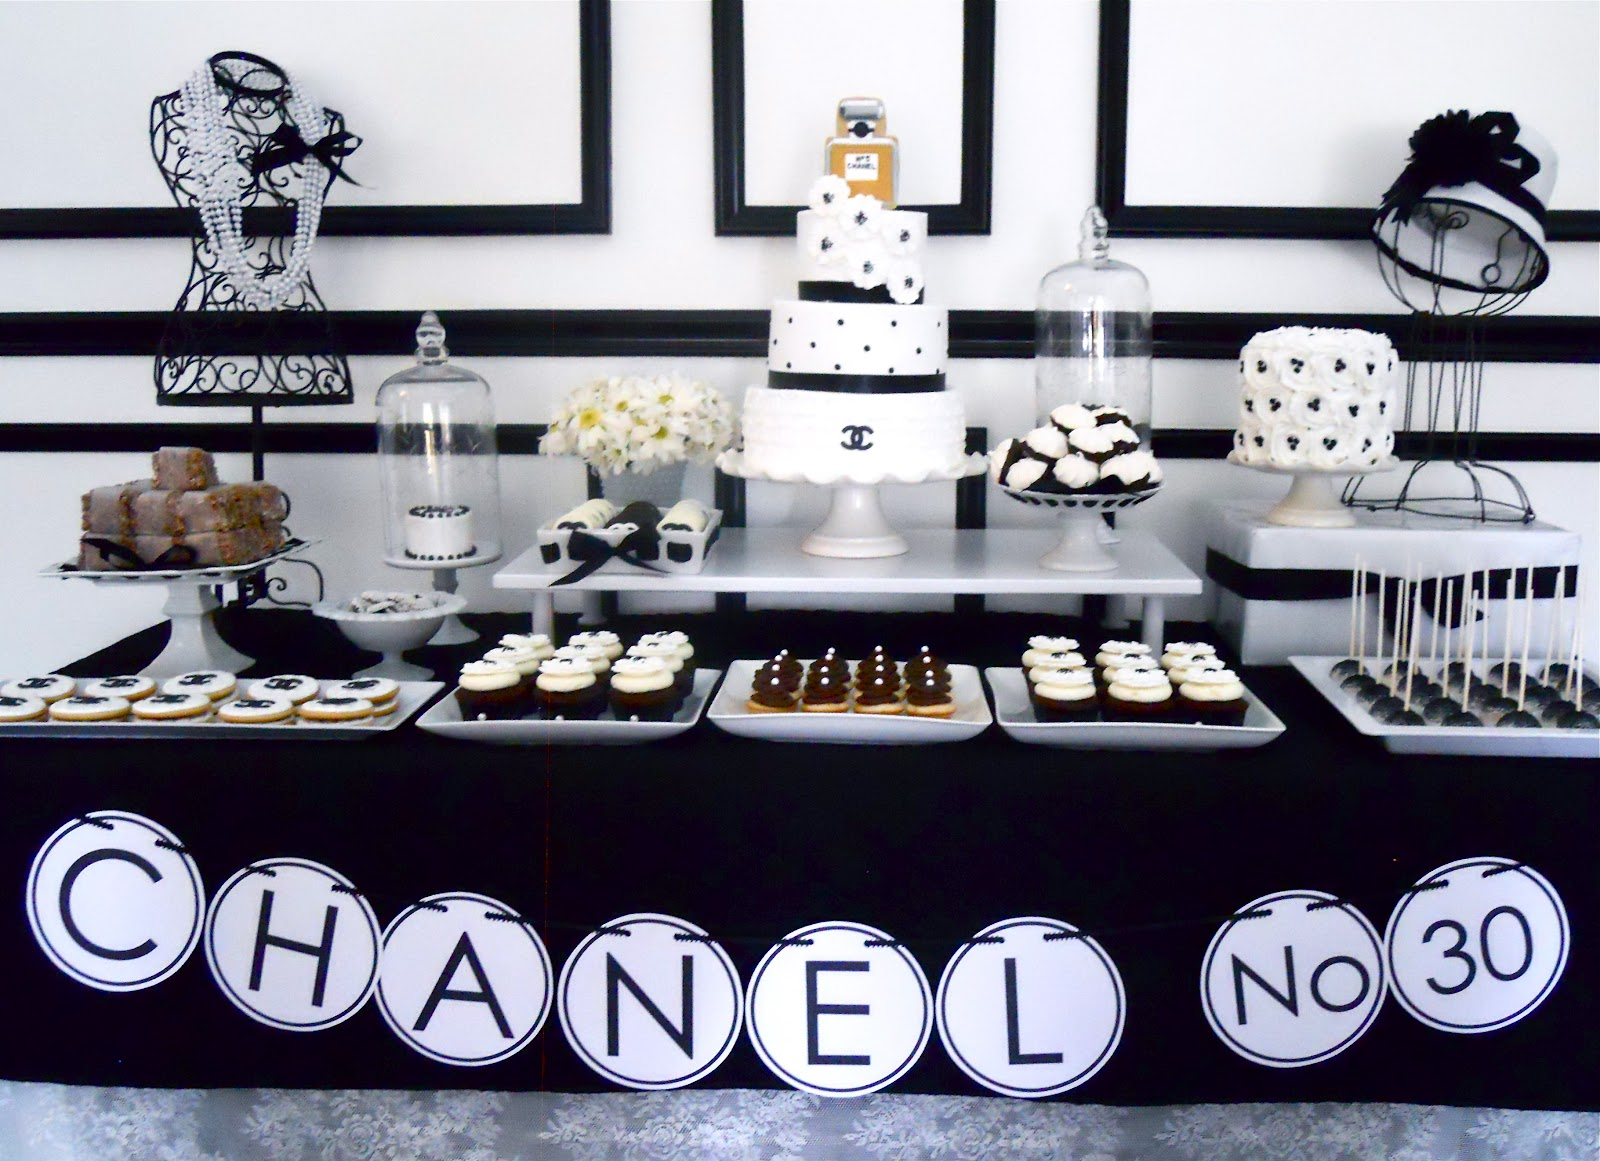 Chanel no 30 birthday theme